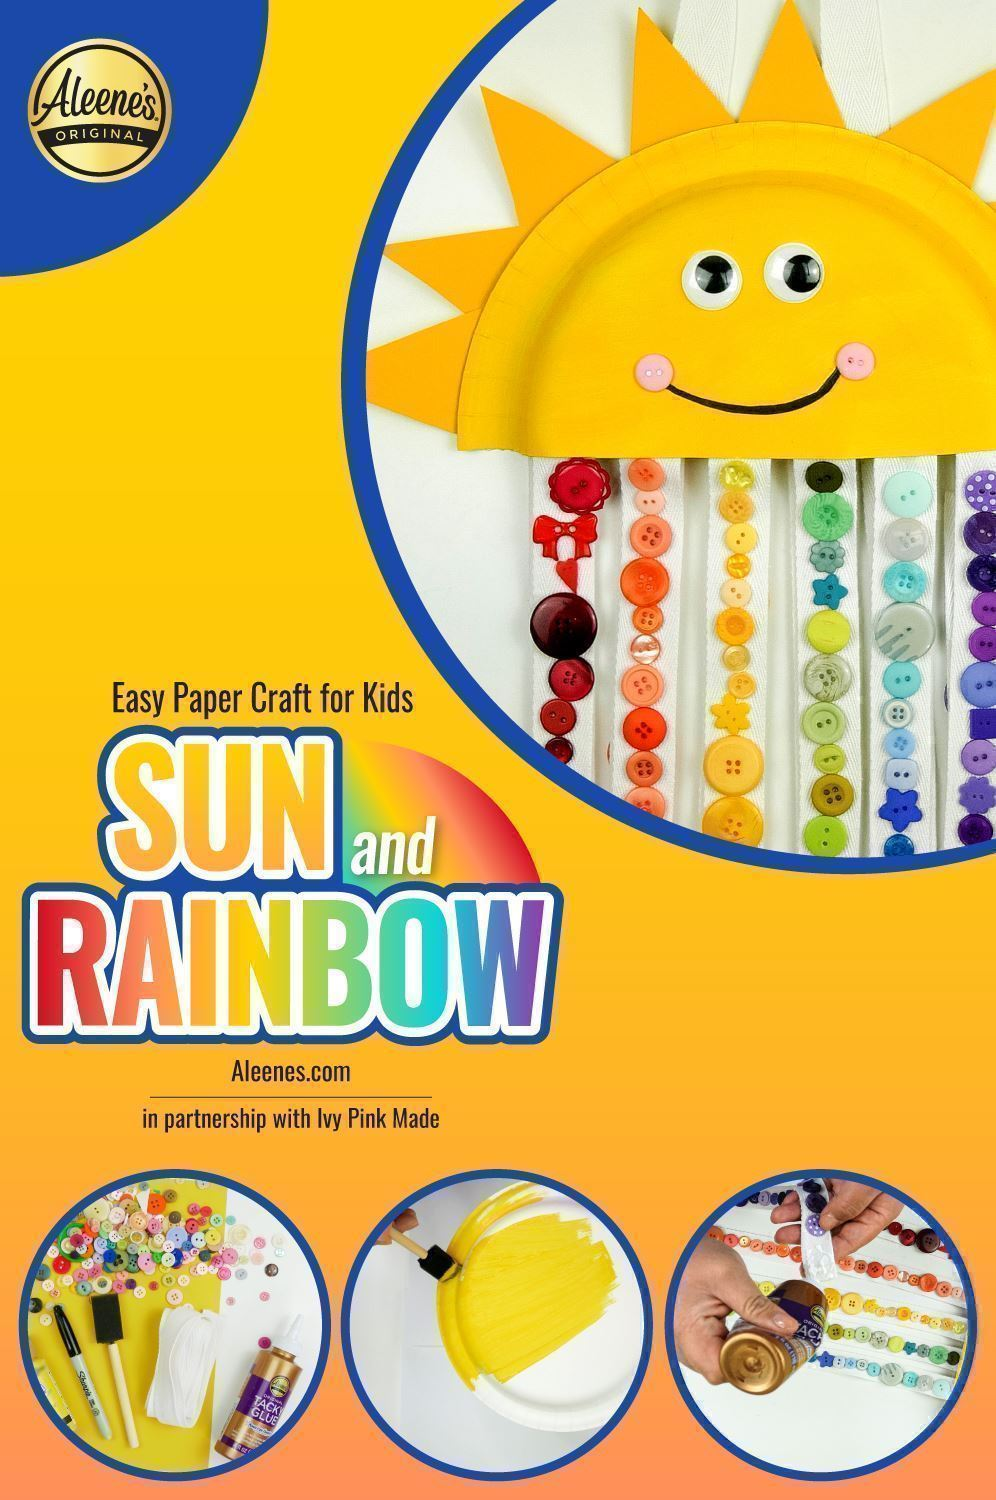 Easy Paper Craft for Kids: Sun and Rainbow